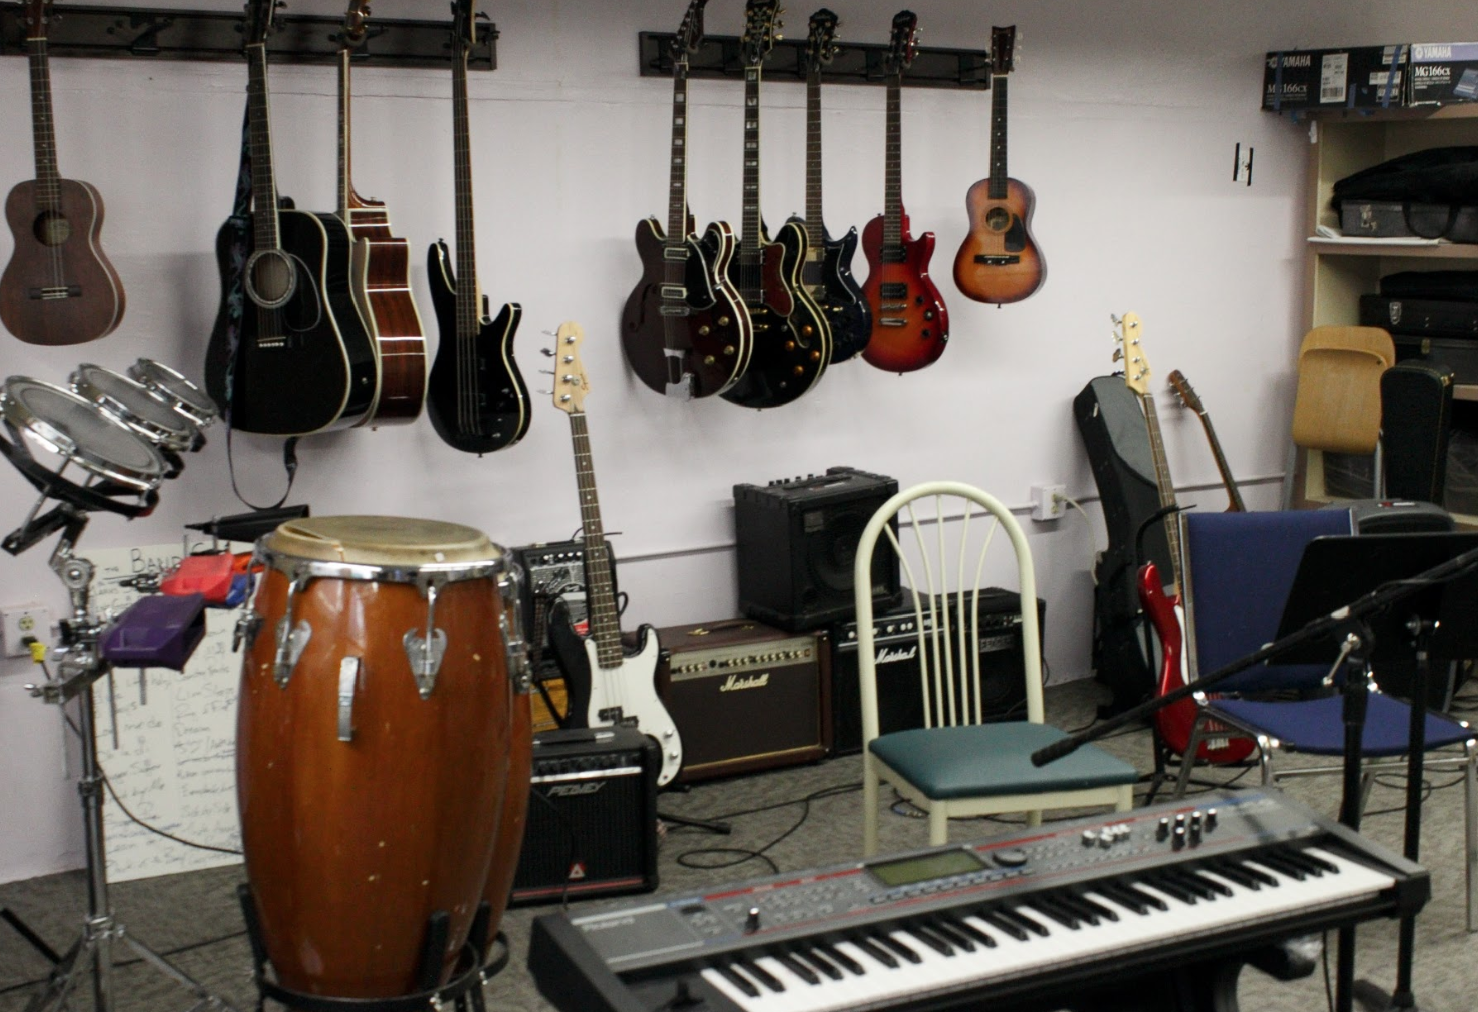 In class, the experience provided is extremely personalized to each attendee. There is a wall of guitars, multiple drum sets and microphones to get everyone involved in the day's activities.